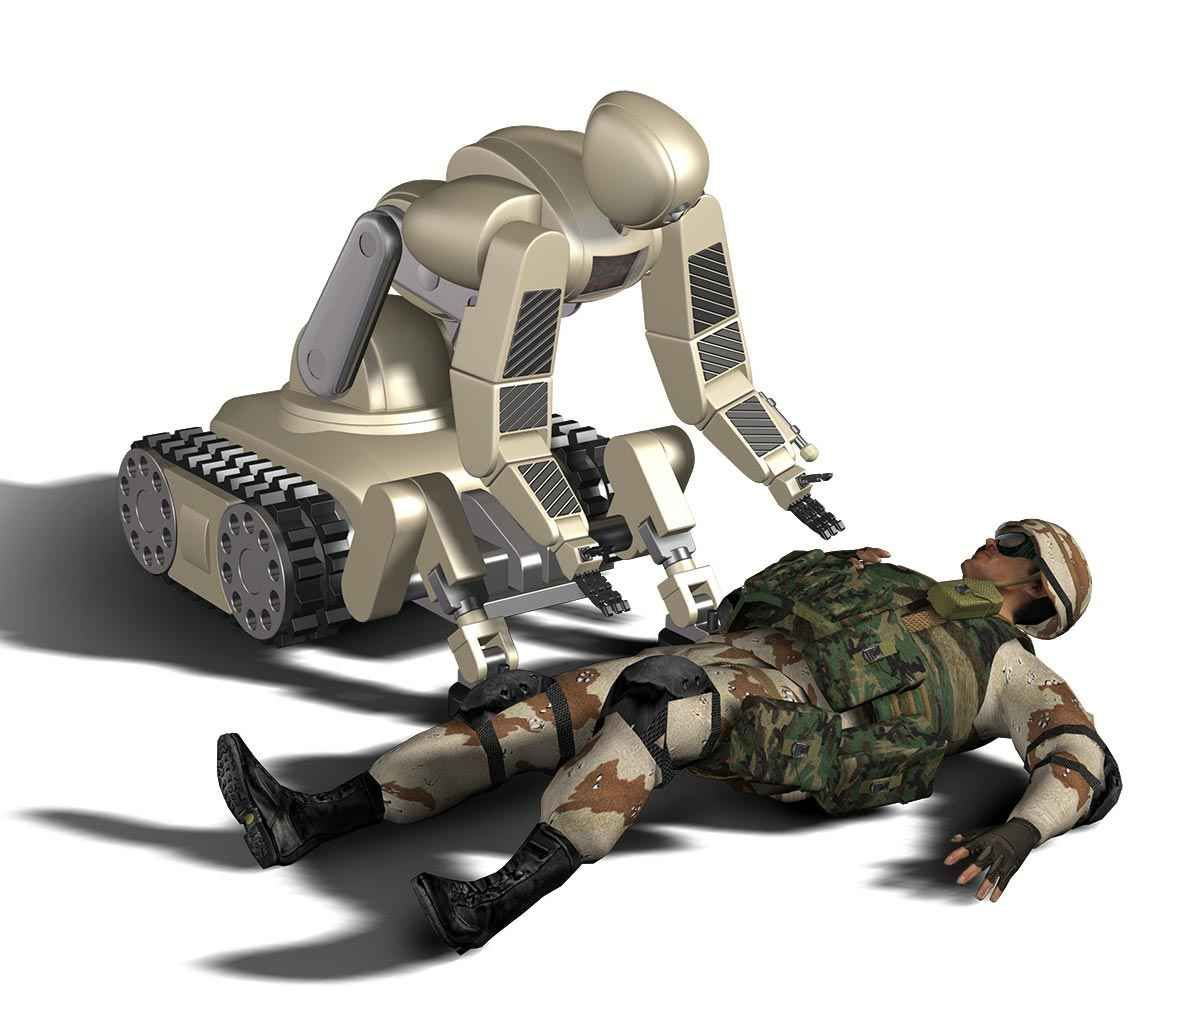 Military Robots: Armed, but How Dangerous?